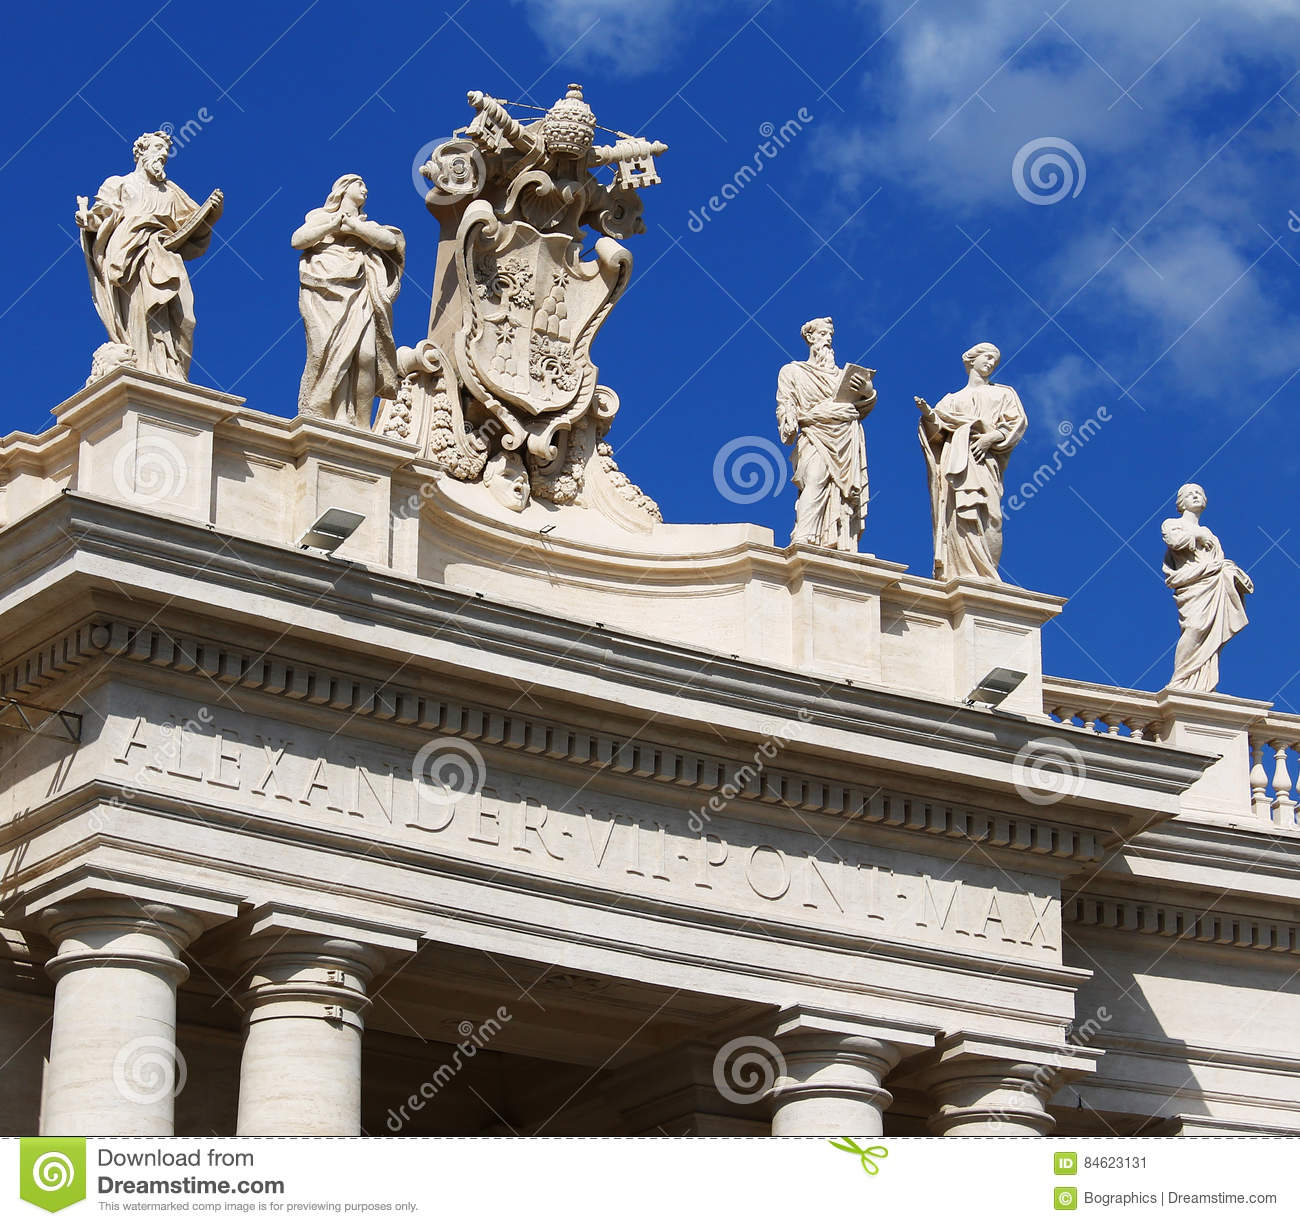 Photography Statue Monument Gothic Religion Sky Skies: White Statues On Top Of Vatican Building, Blue Sky Stock